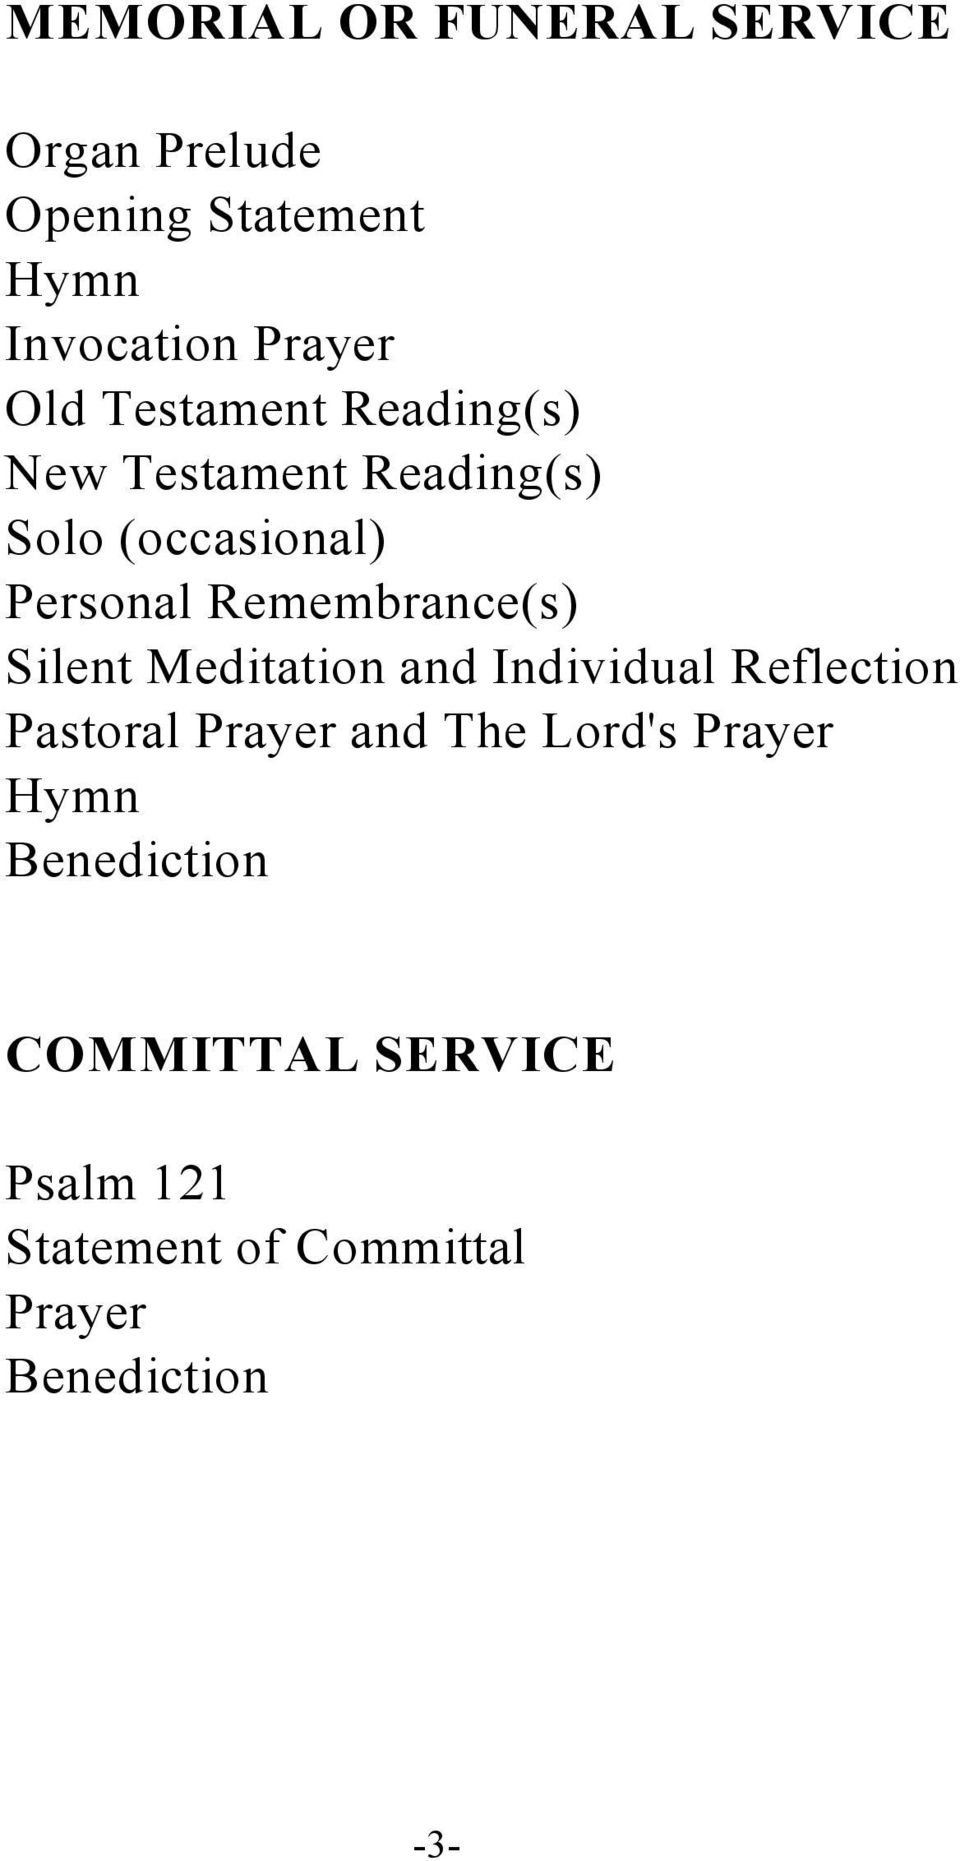 Remembrance(s) Silent Meditation and Individual Reflection Pastoral Prayer and The